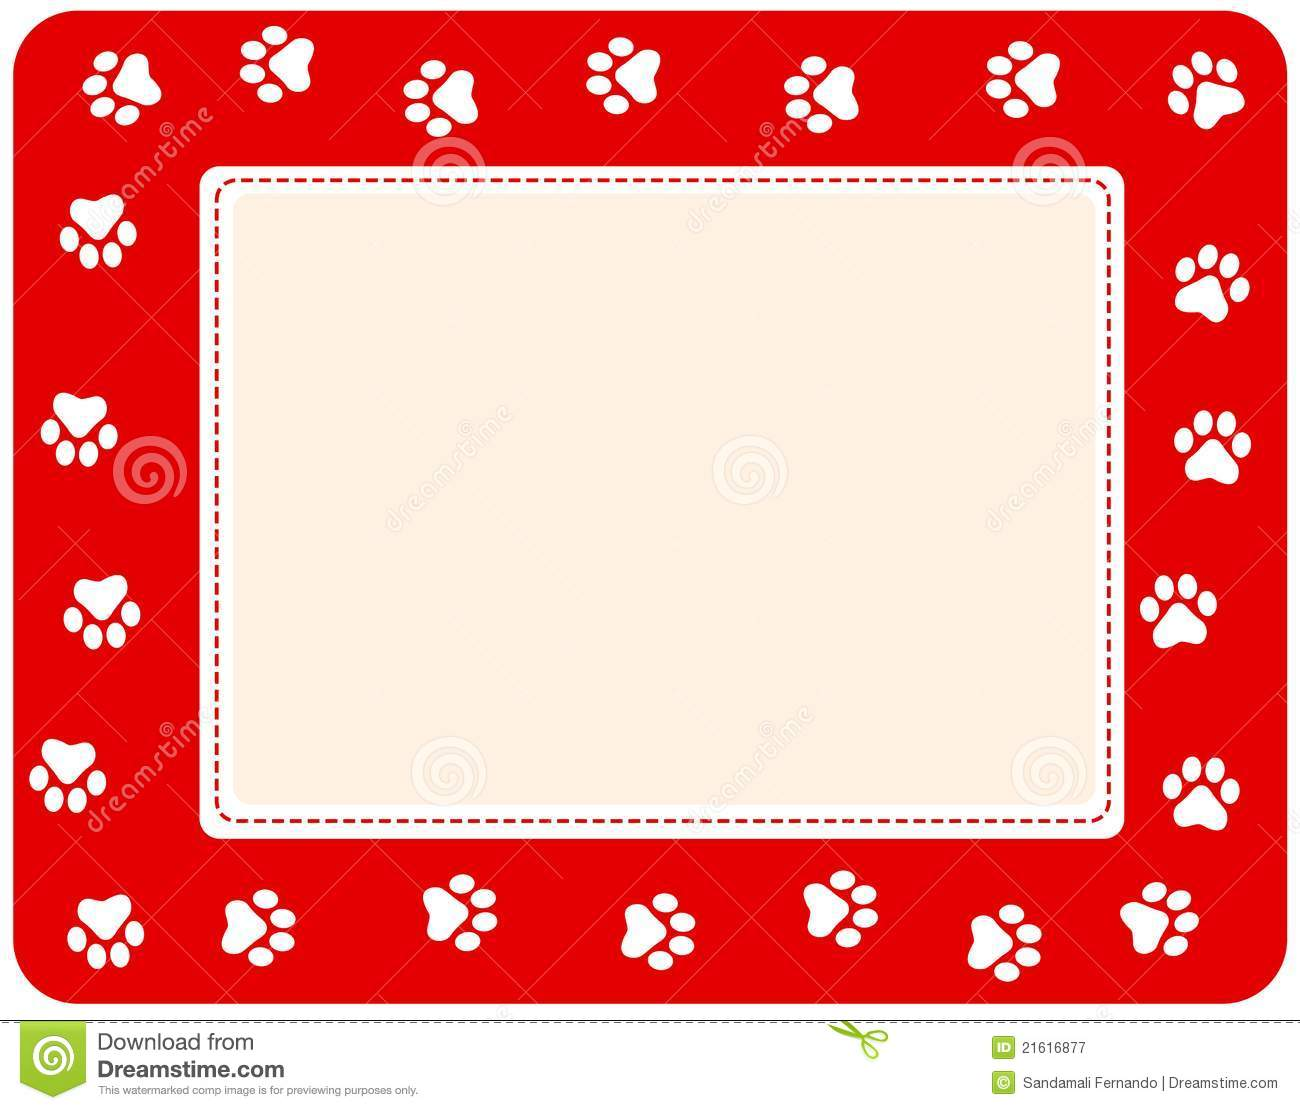 Paw Prints Border Stock Vector Illustration Of Header 21616877